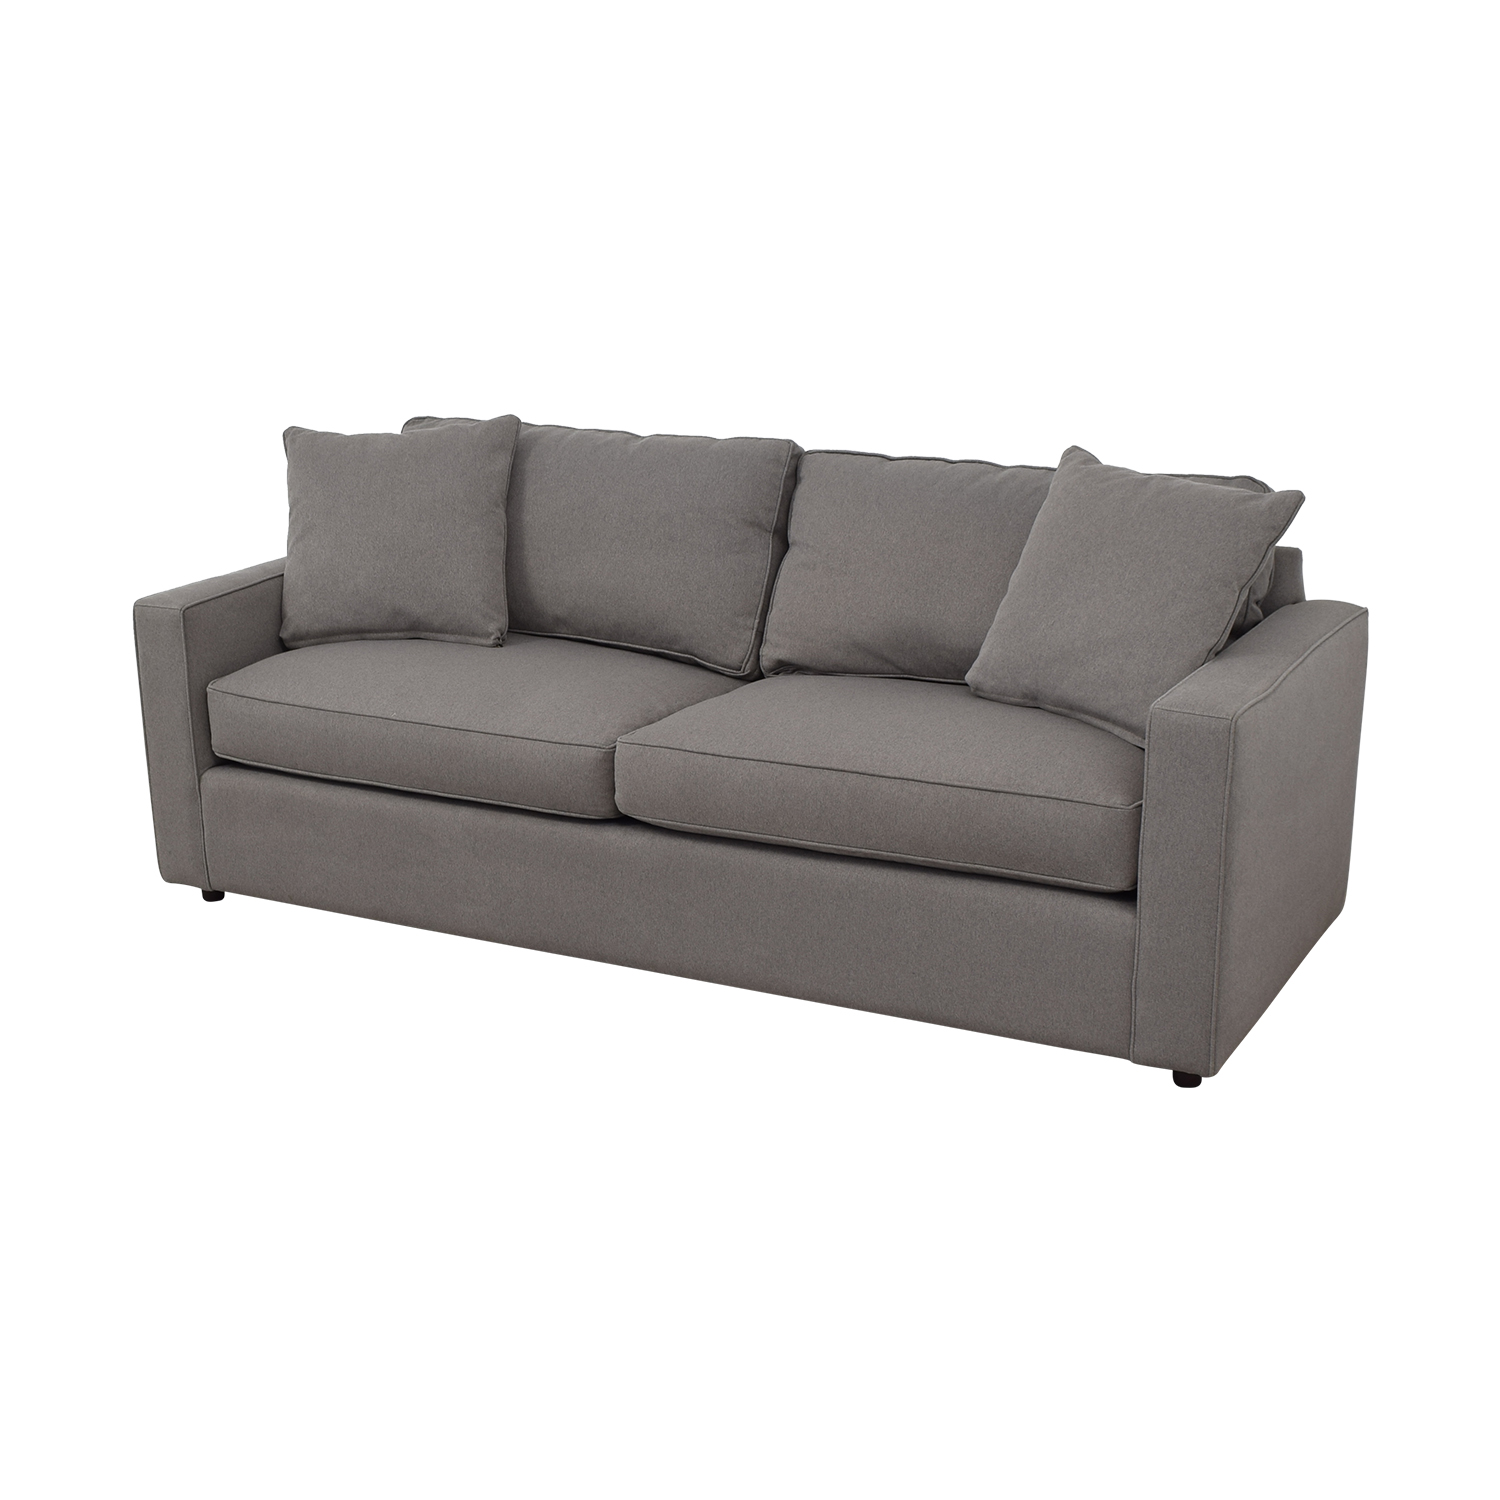 Room & Board York Sofa sale